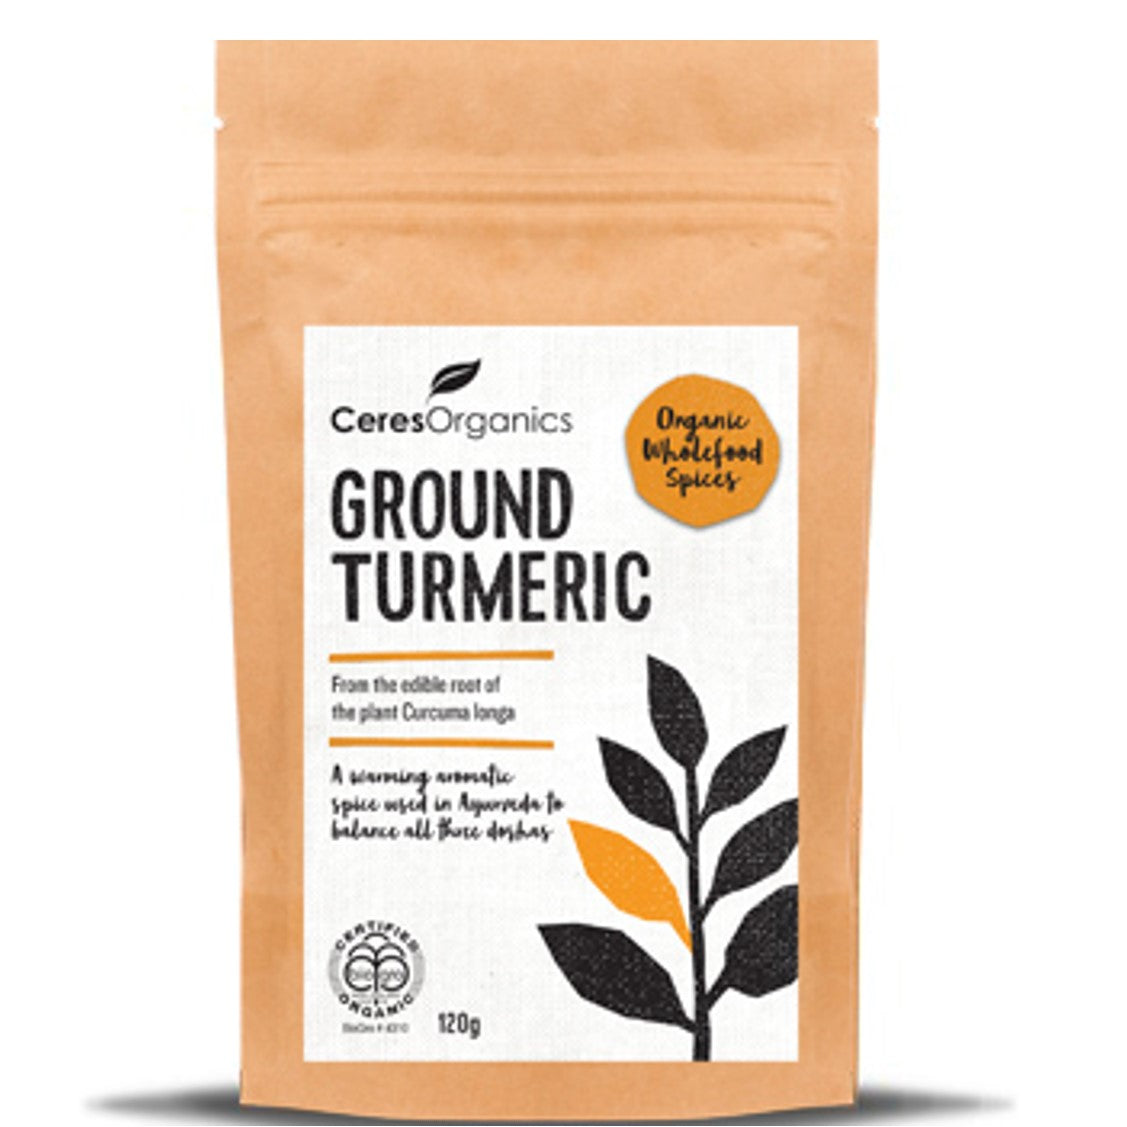 Ceres Organics Ground Tumeric,100g-NaturesWisdom